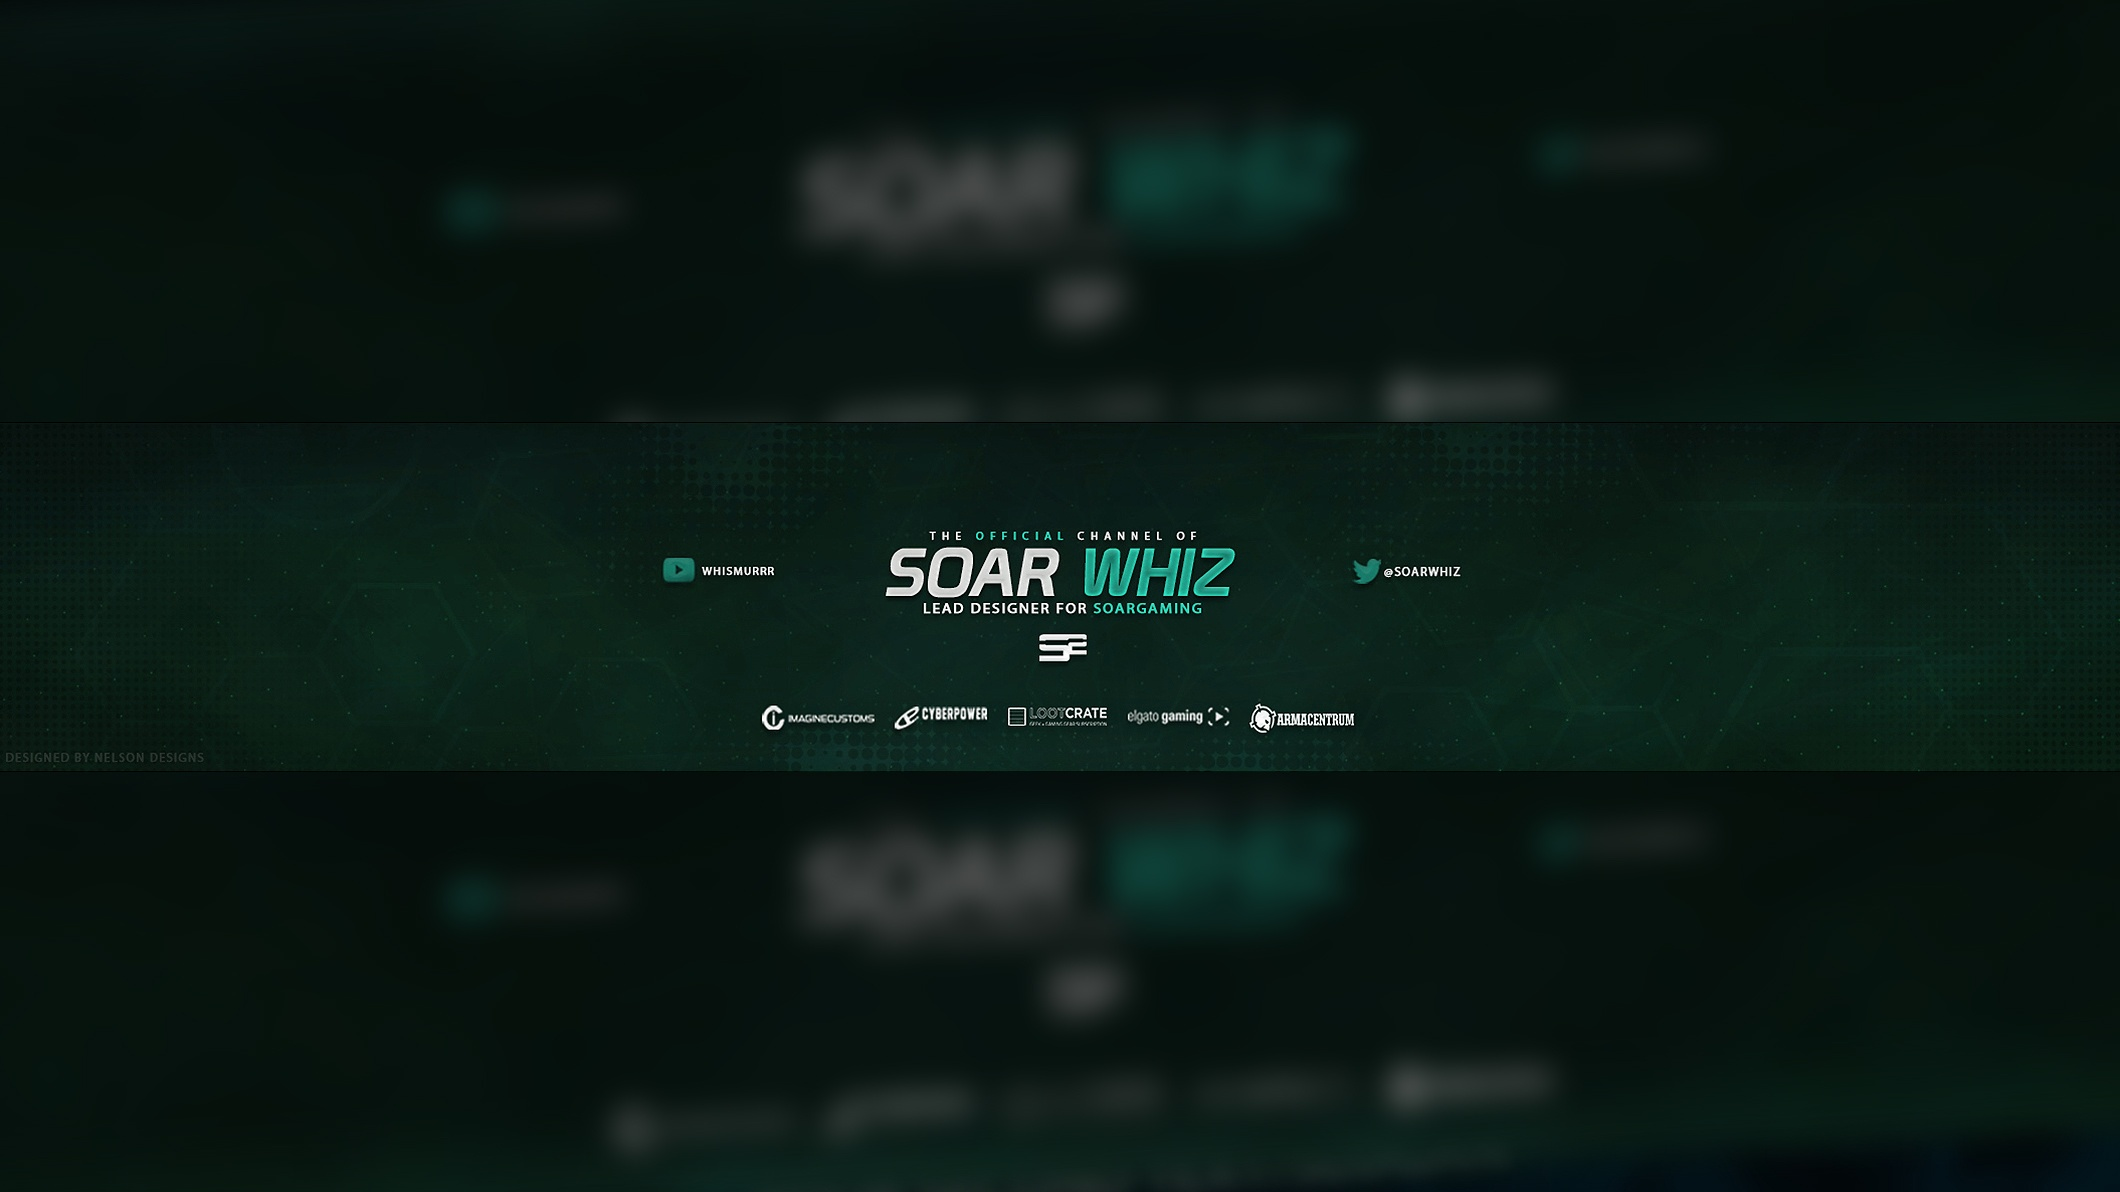 SoaR Whiz YouTube Banner PSD